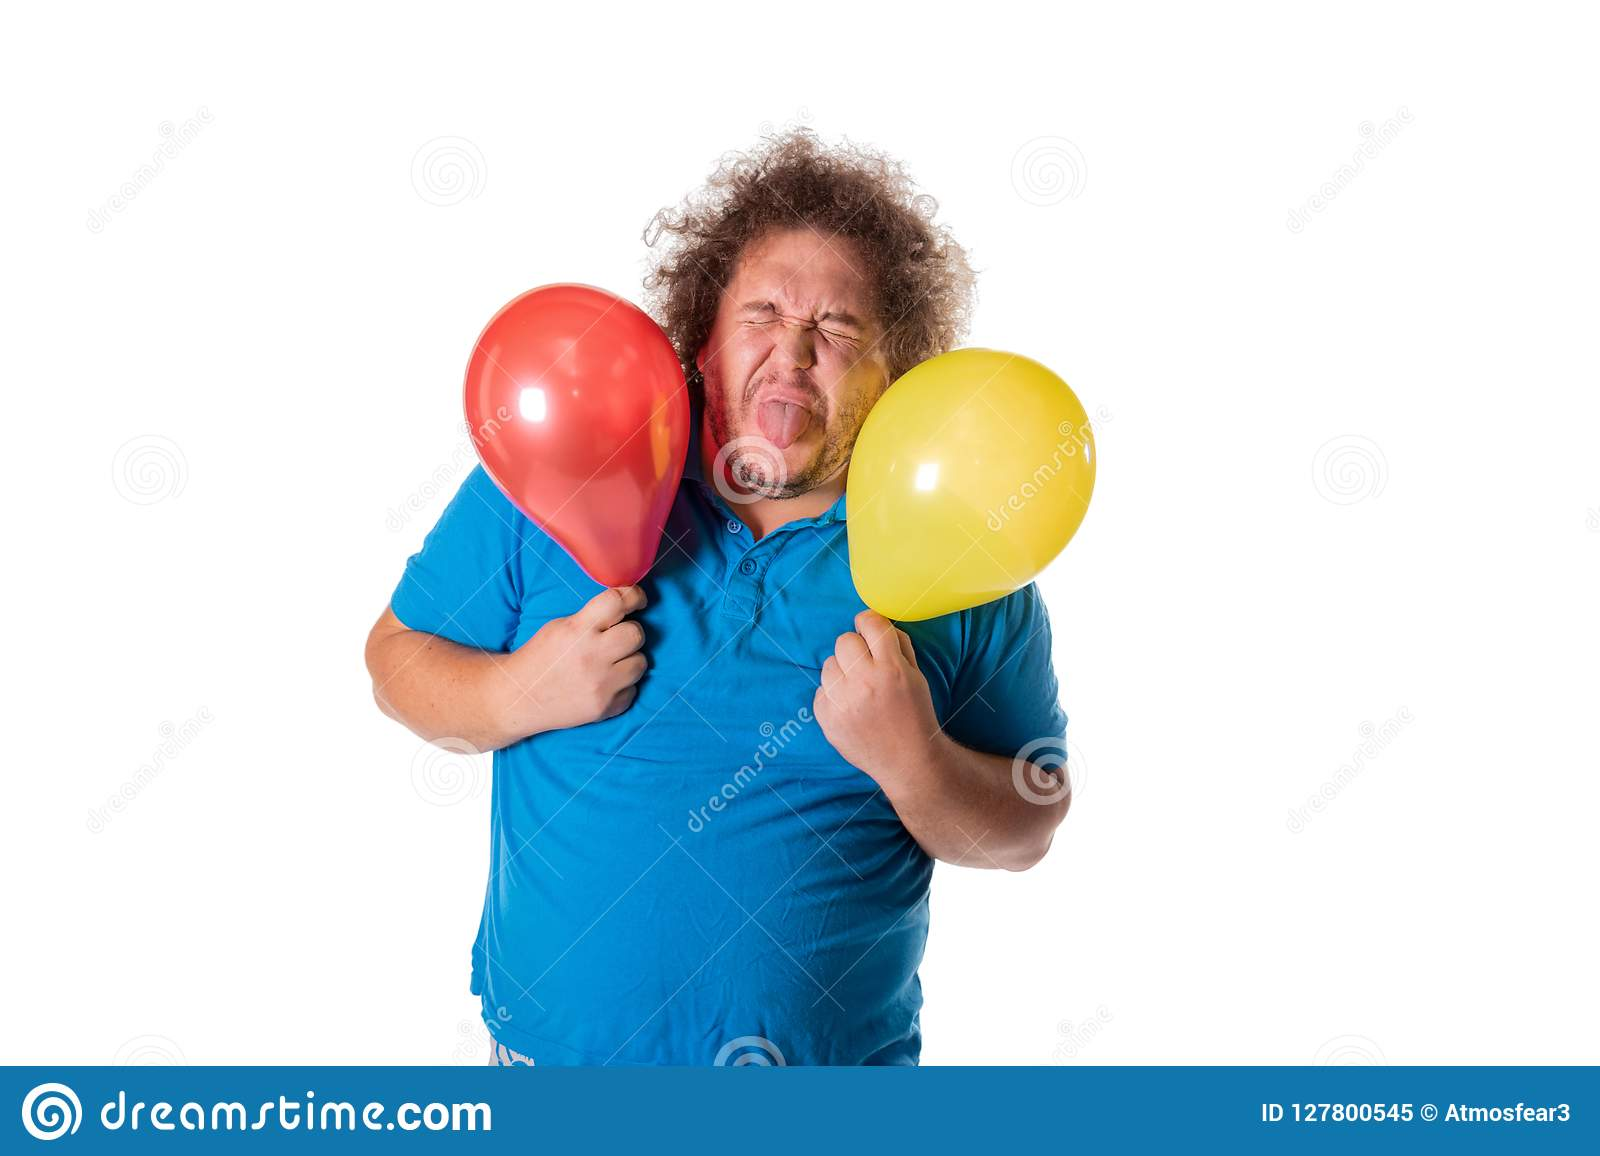 Funny Fat Man With Balloons Happy Birthday